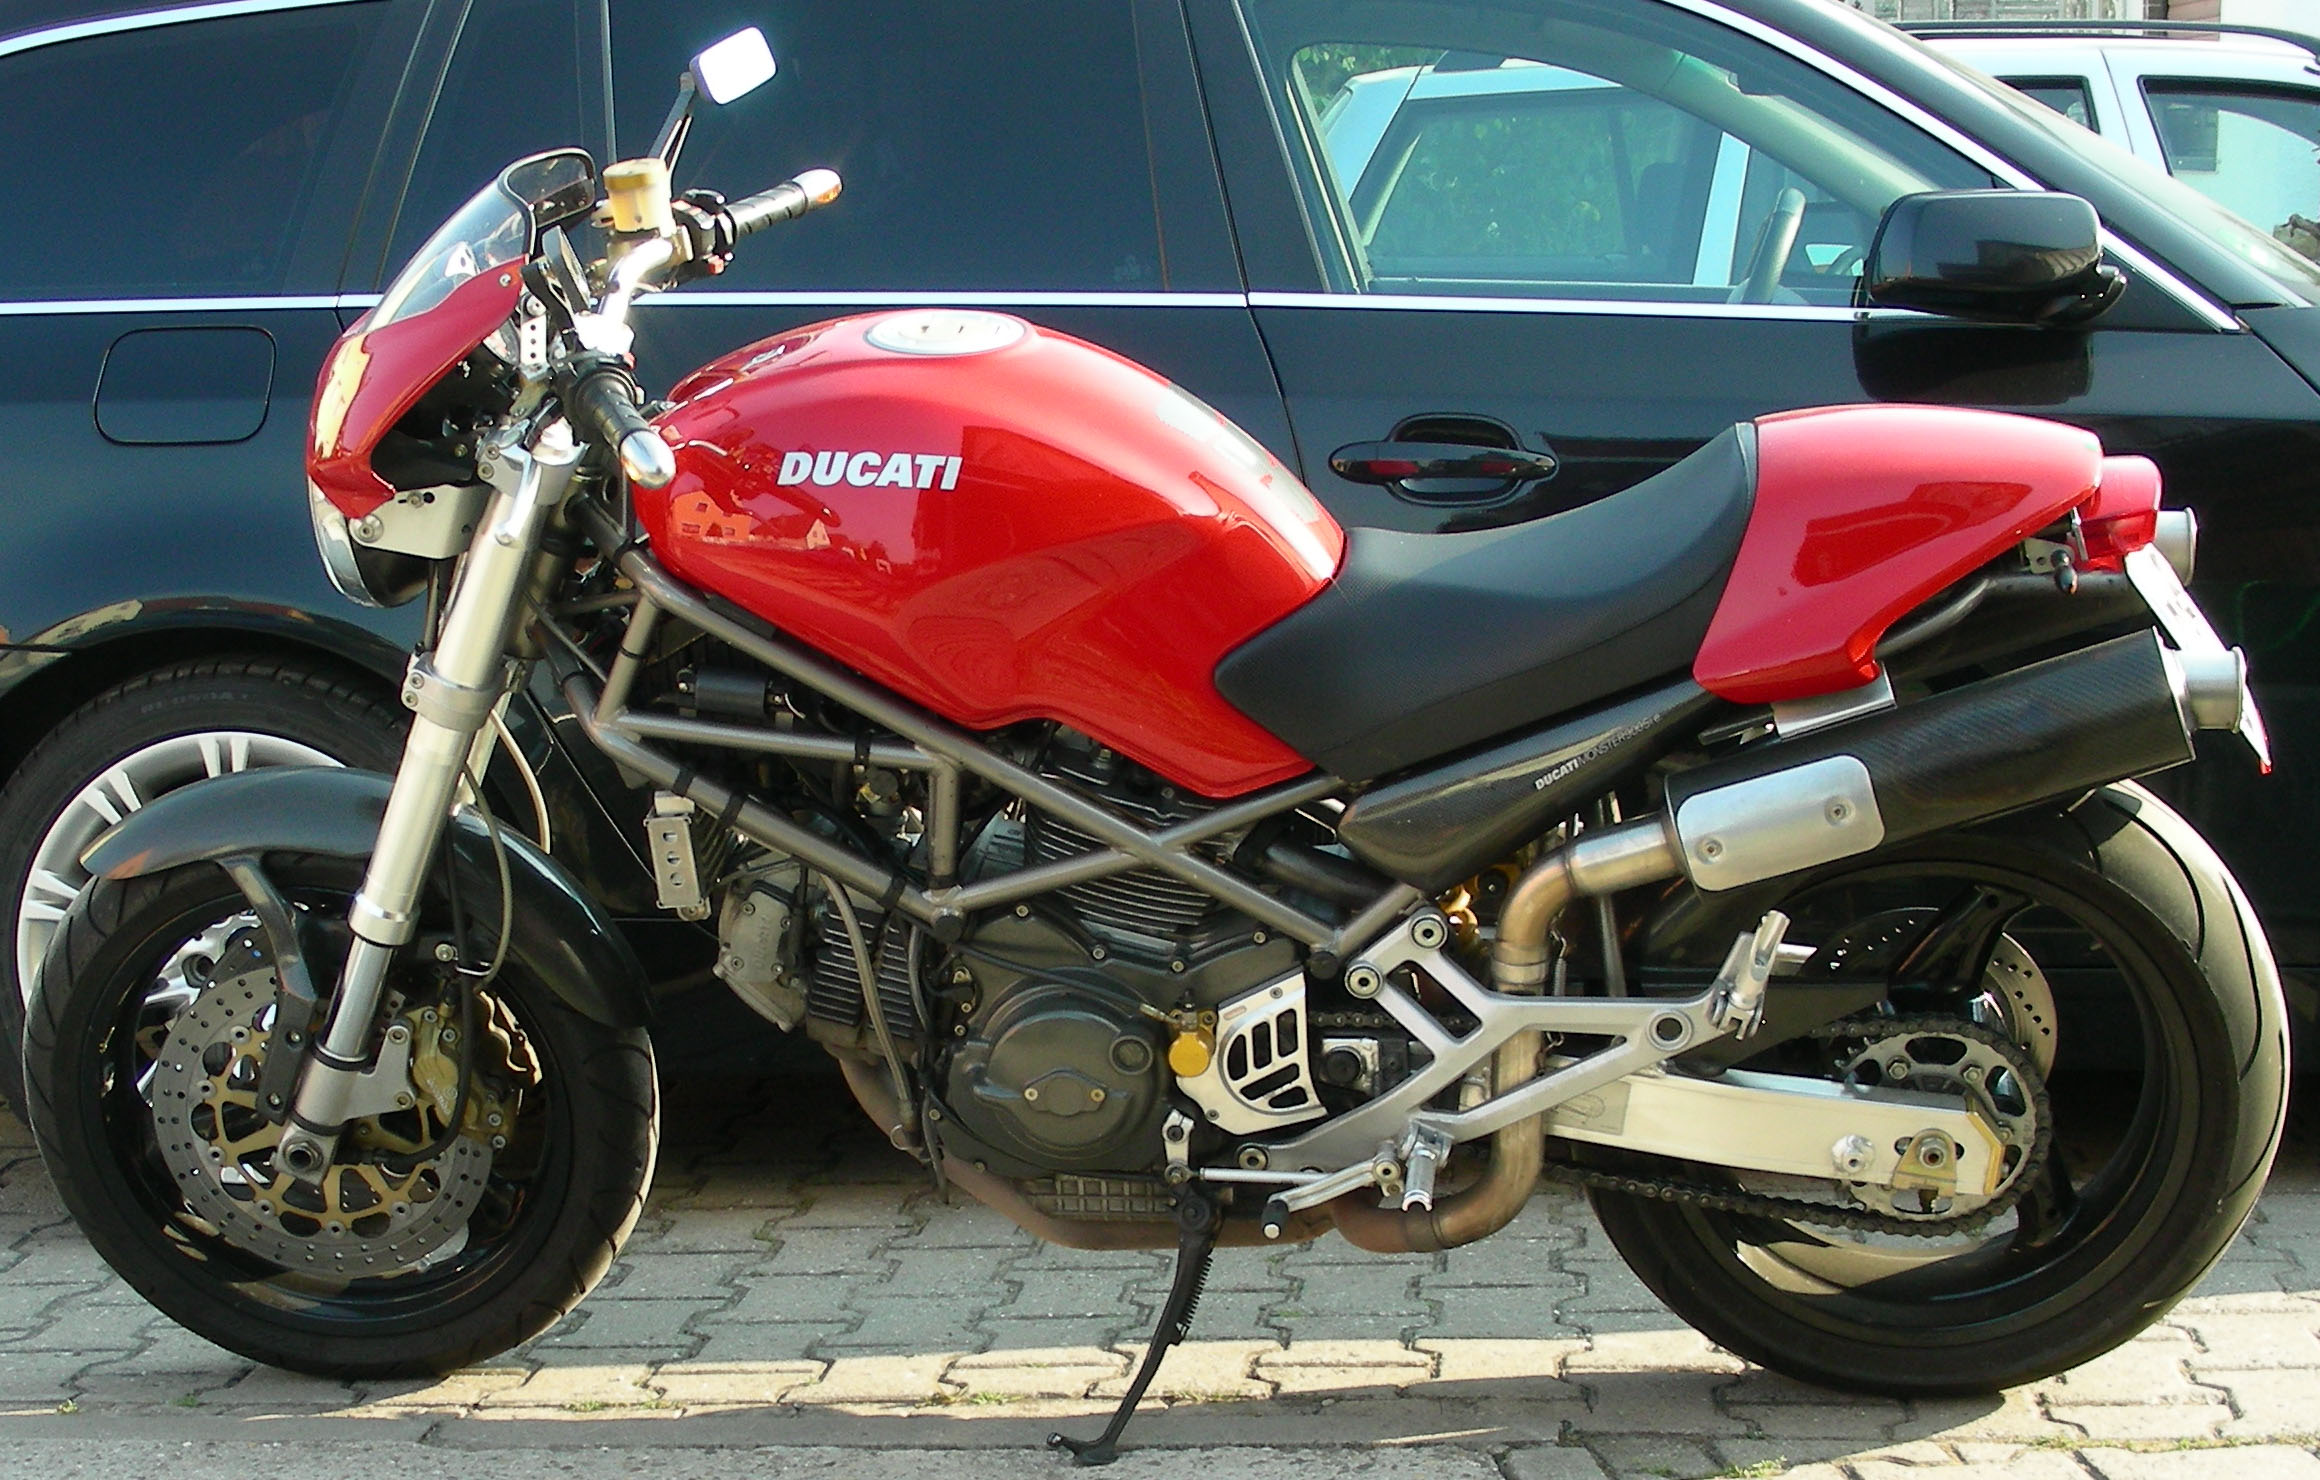 Ducati 900 Monster S 1998 images #78782